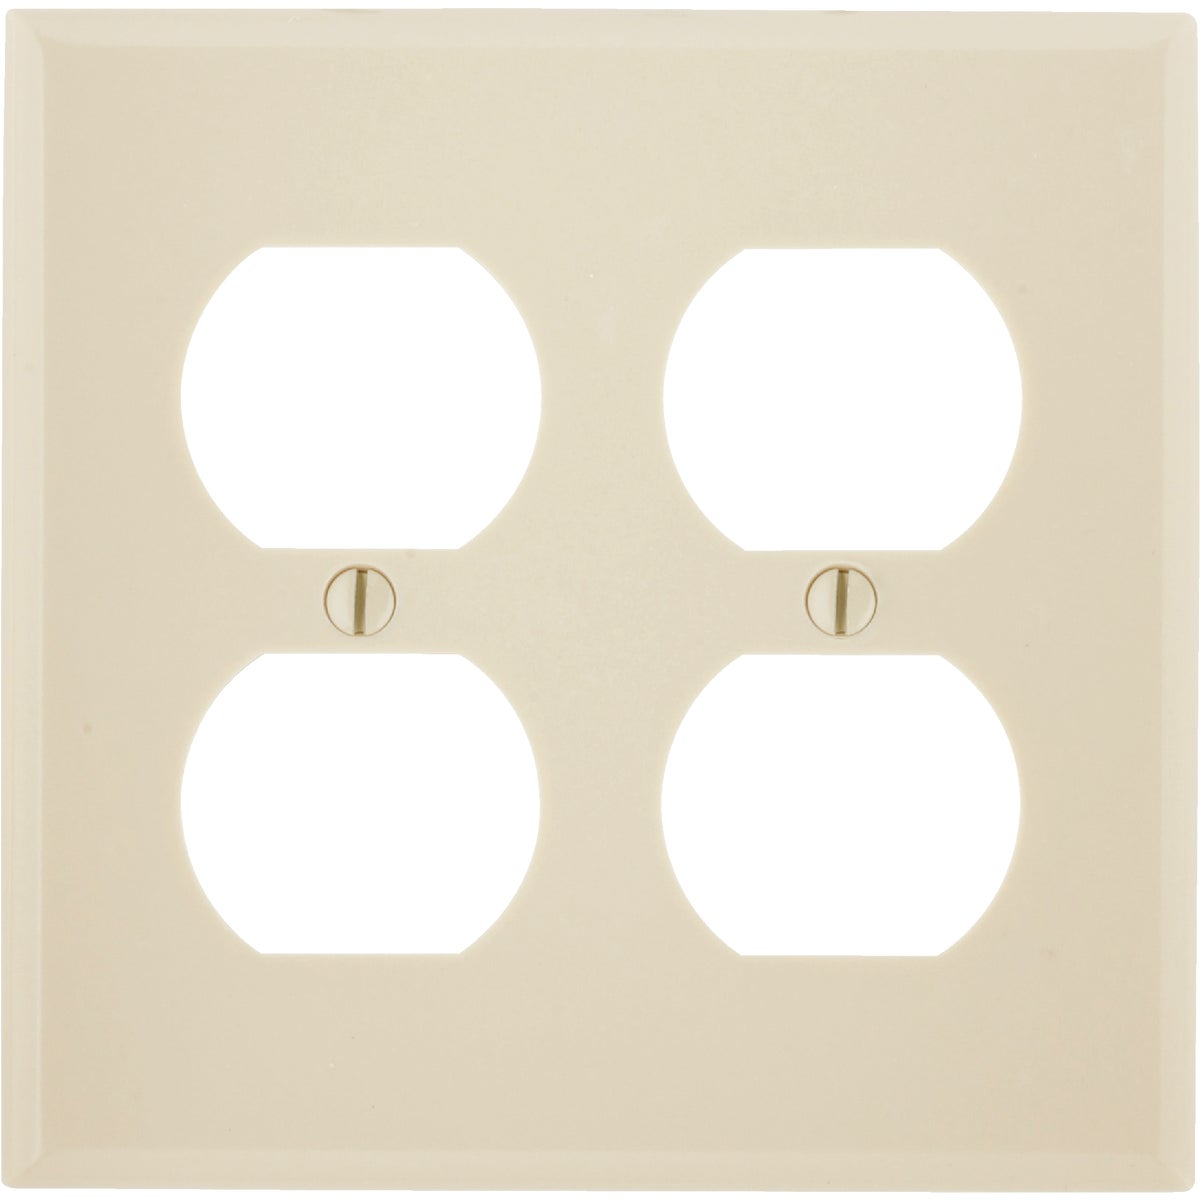 IV 4-OUTLET WALL PLATE - 86016 by Leviton Mfg Co